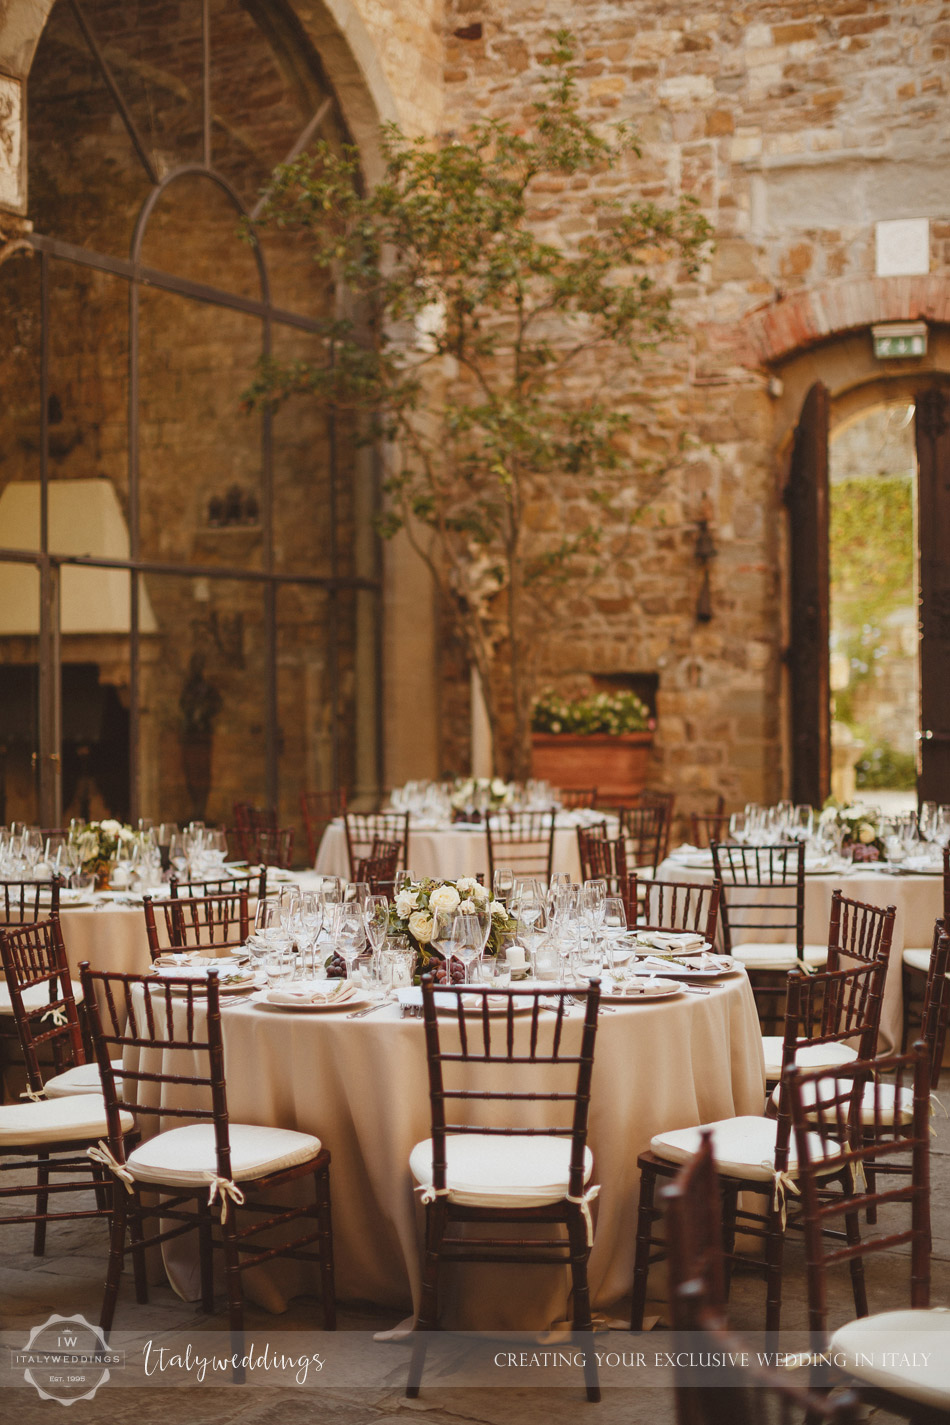 Castello di Vincigliata courtyard table setup